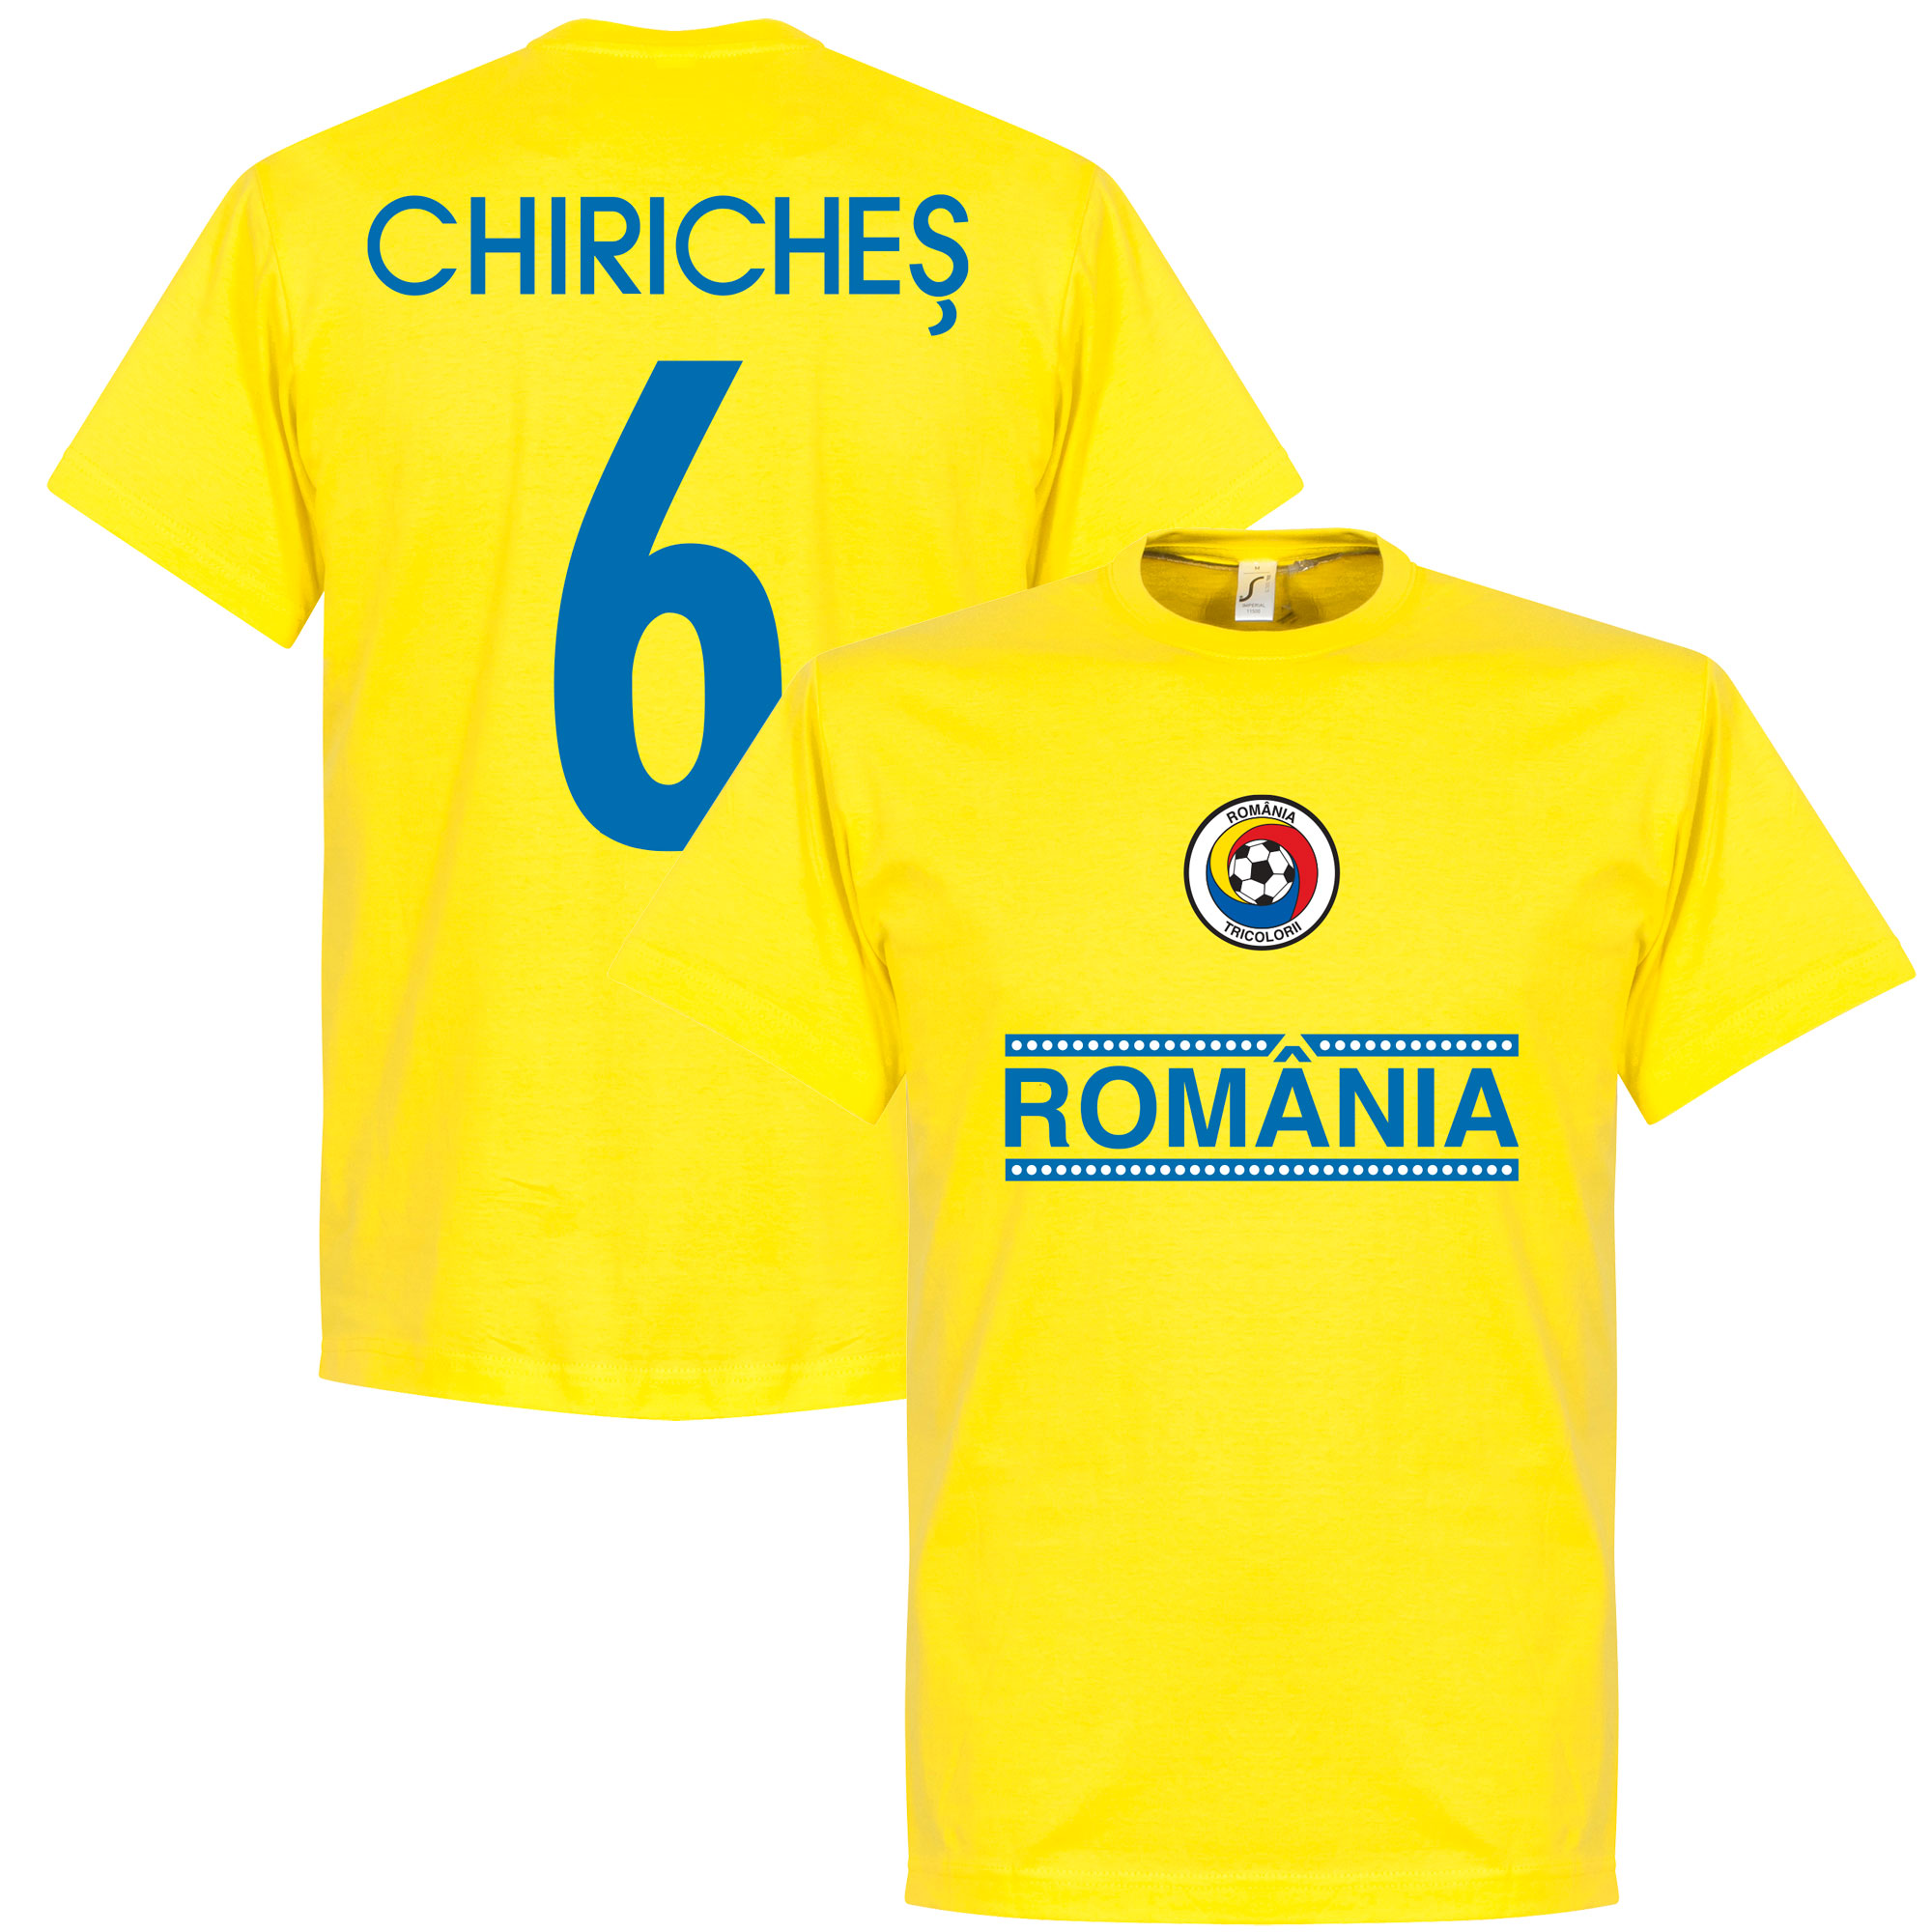 Romania Chiriches 6 Team Tee - Yellow - XXXL